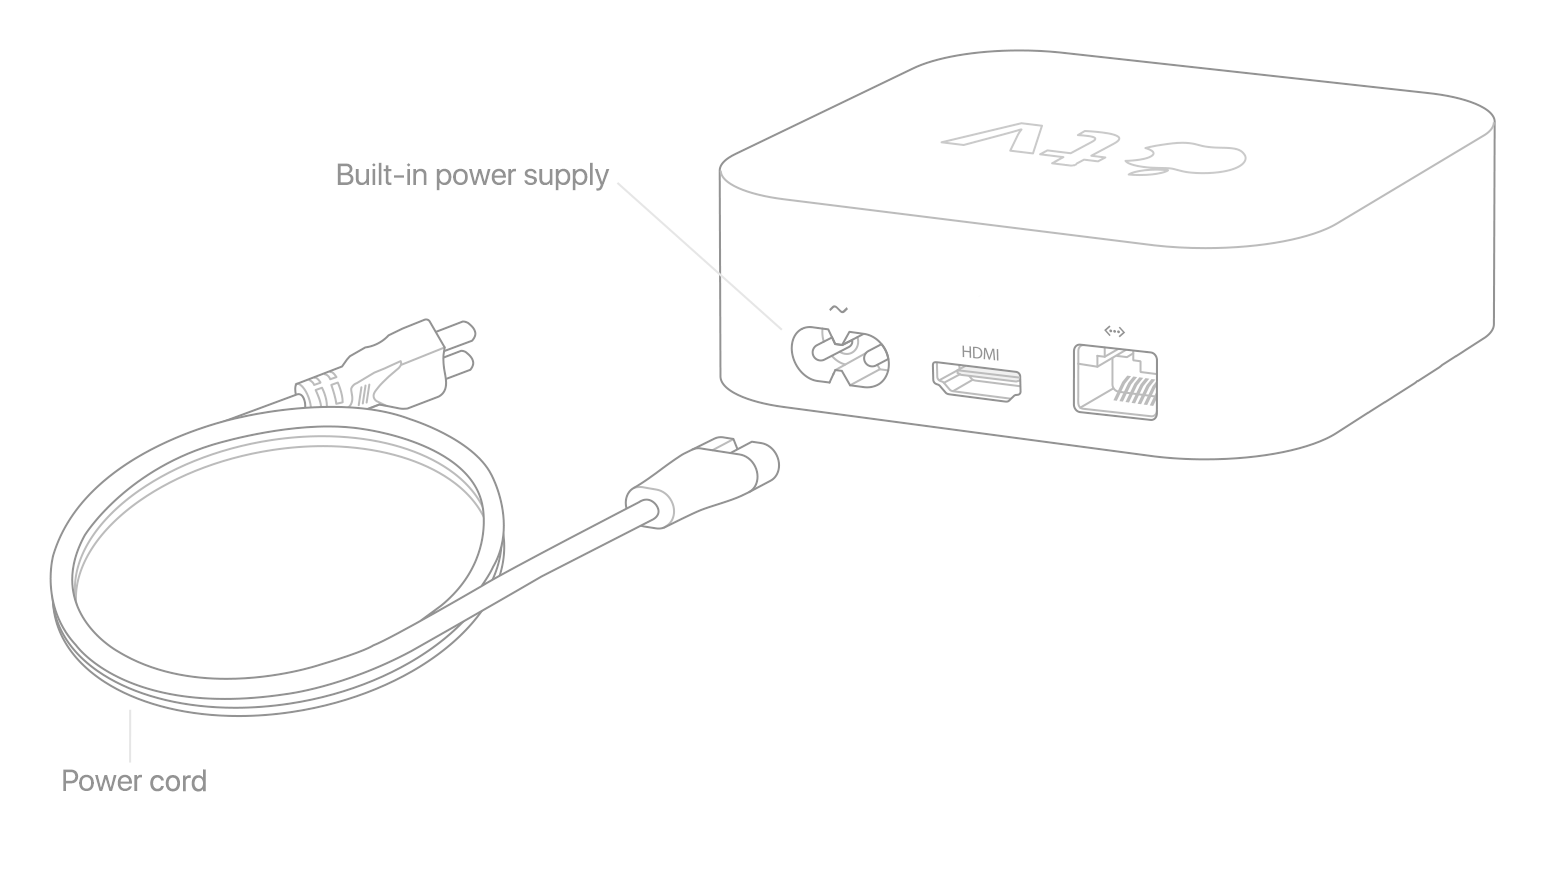 If Your Apple Tv Wont Turn On Support 4k Hdmi Wire Diagram Check The Power Cord